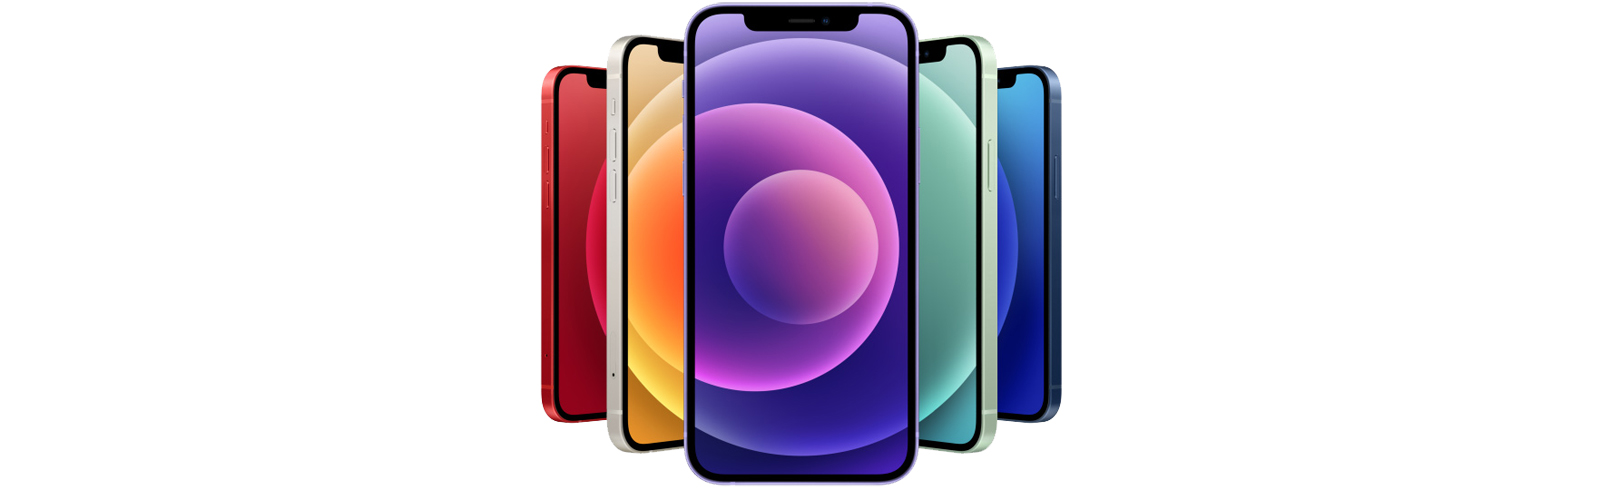 Samsung Display and LG Display have begun producing OLED panels for Apple's iPhone 13 series